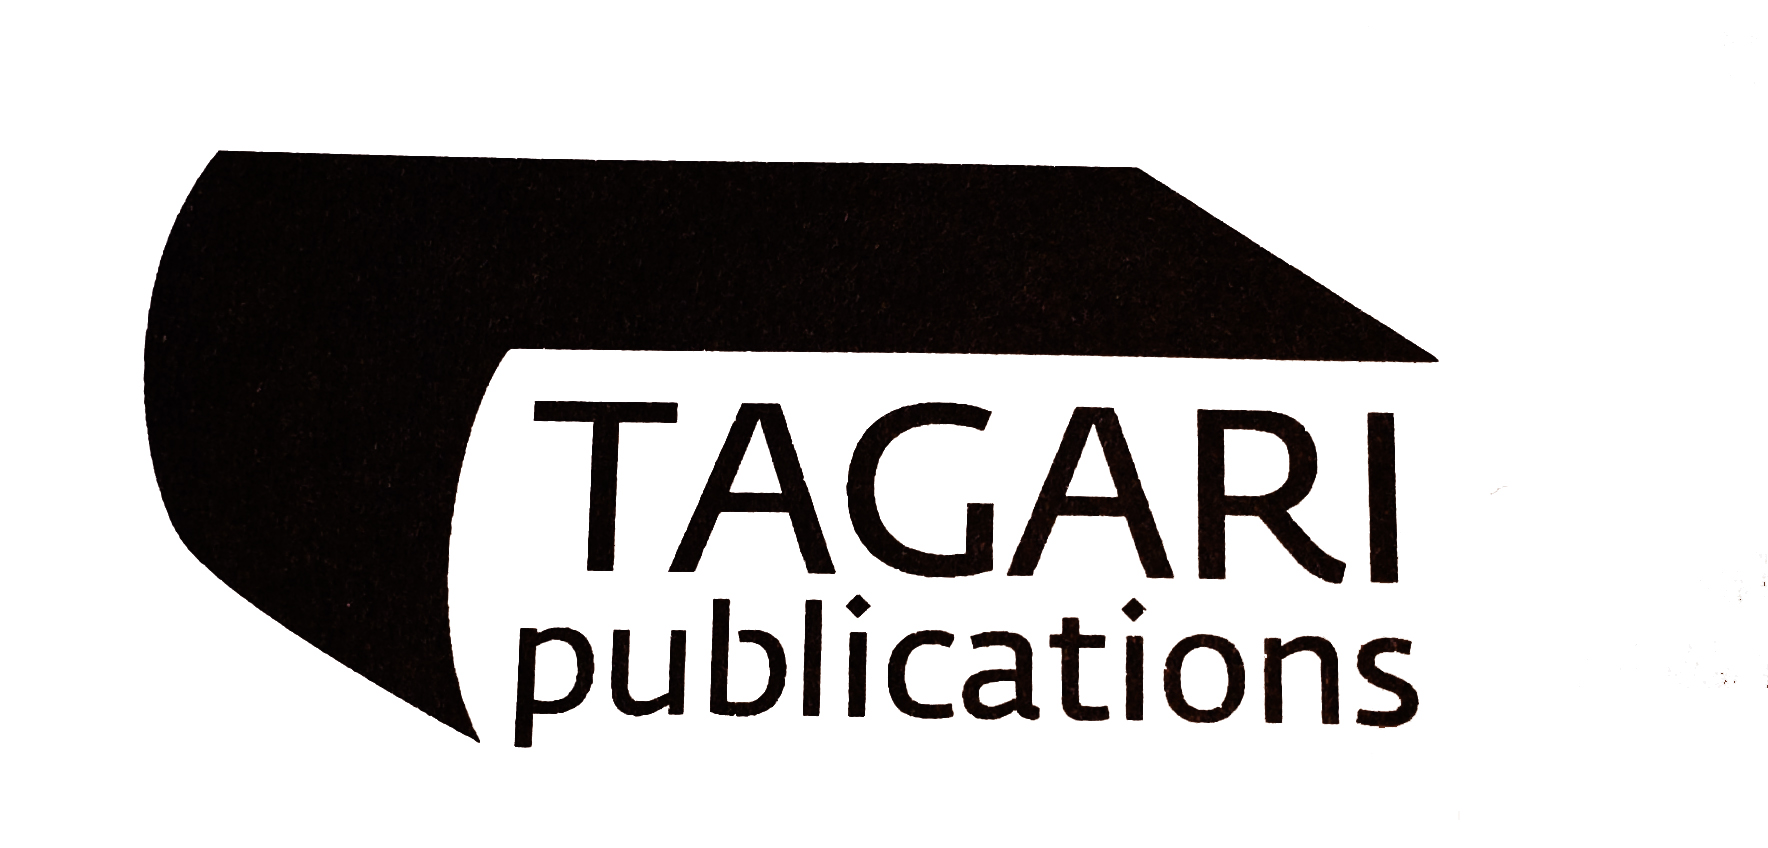 Tagari Publications